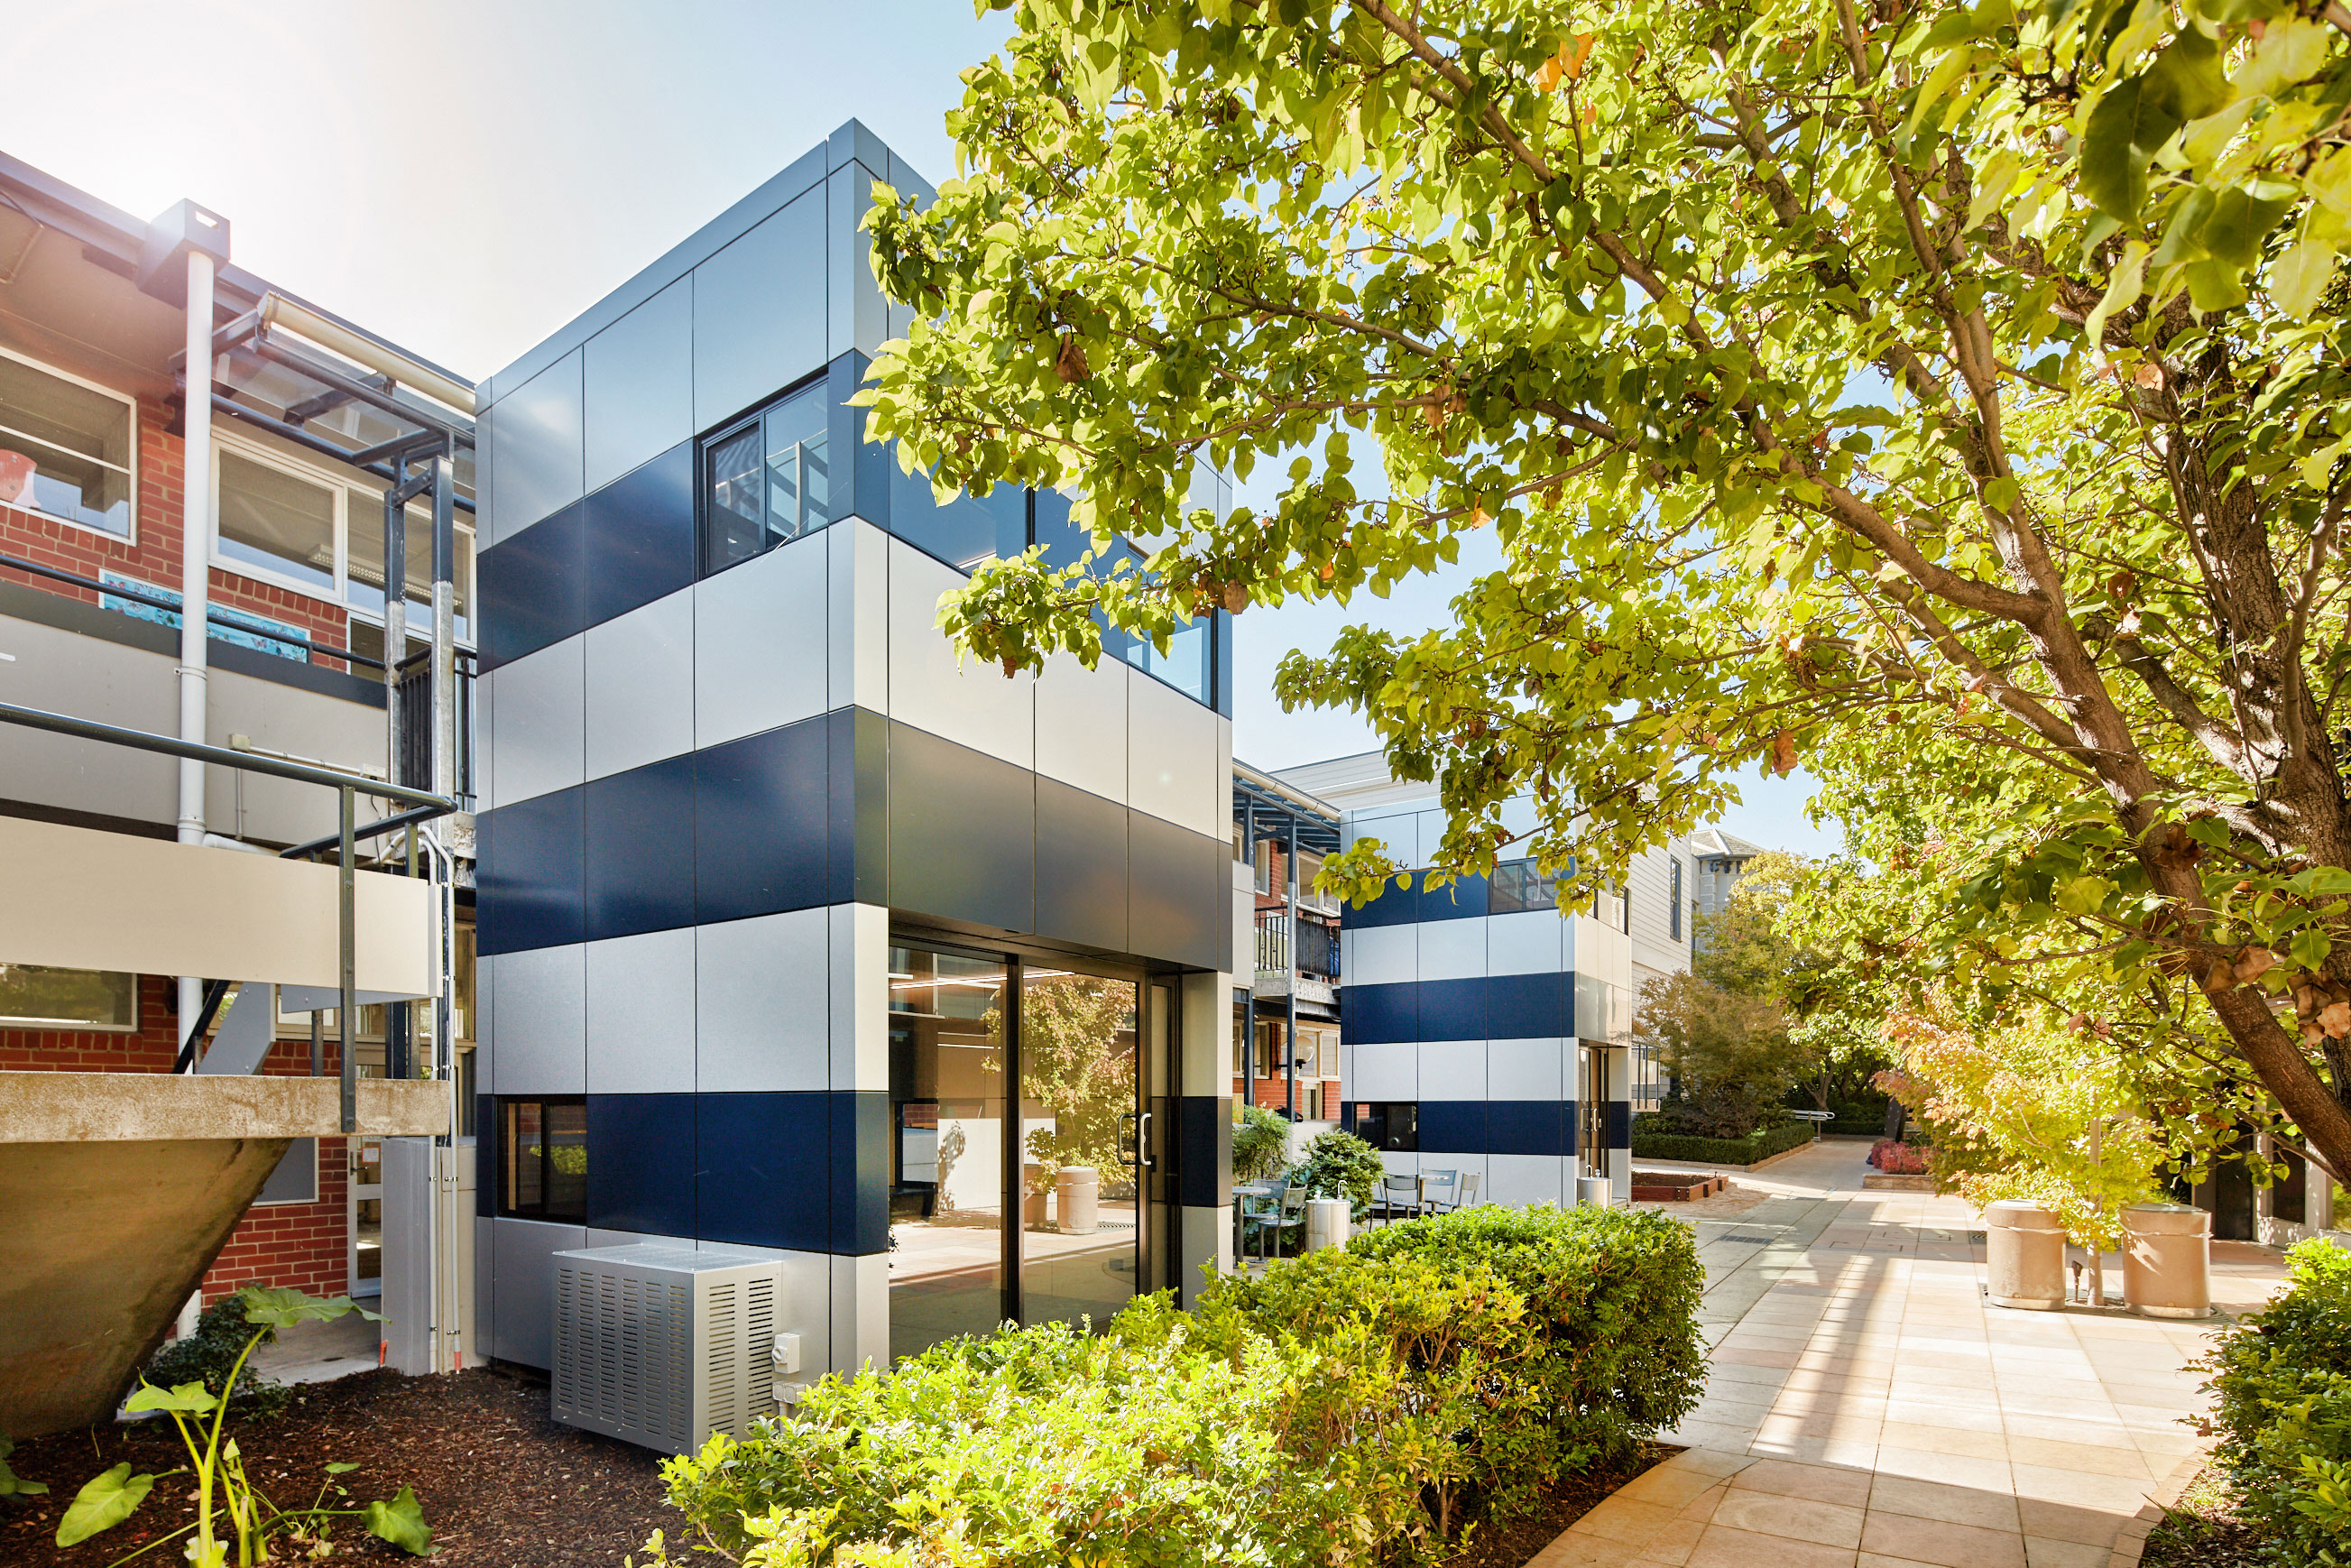 Harwyn, Two Story Towers, Australia, Modular Pods, Alucobond, Aluminum Composite, Photography Chris Daile